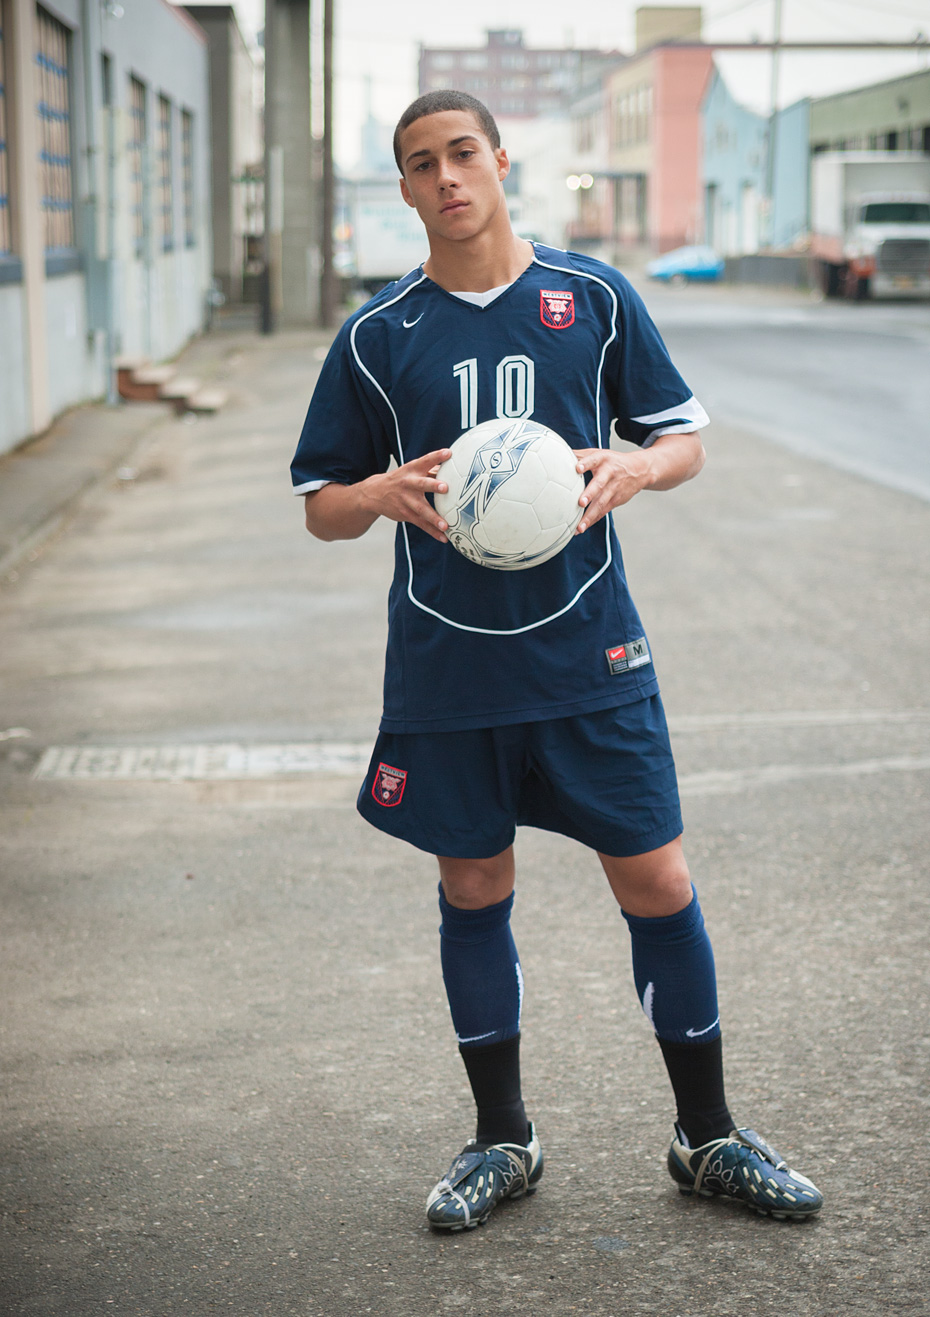 Commercial photographer Portland - soccer player holding ball in urban street